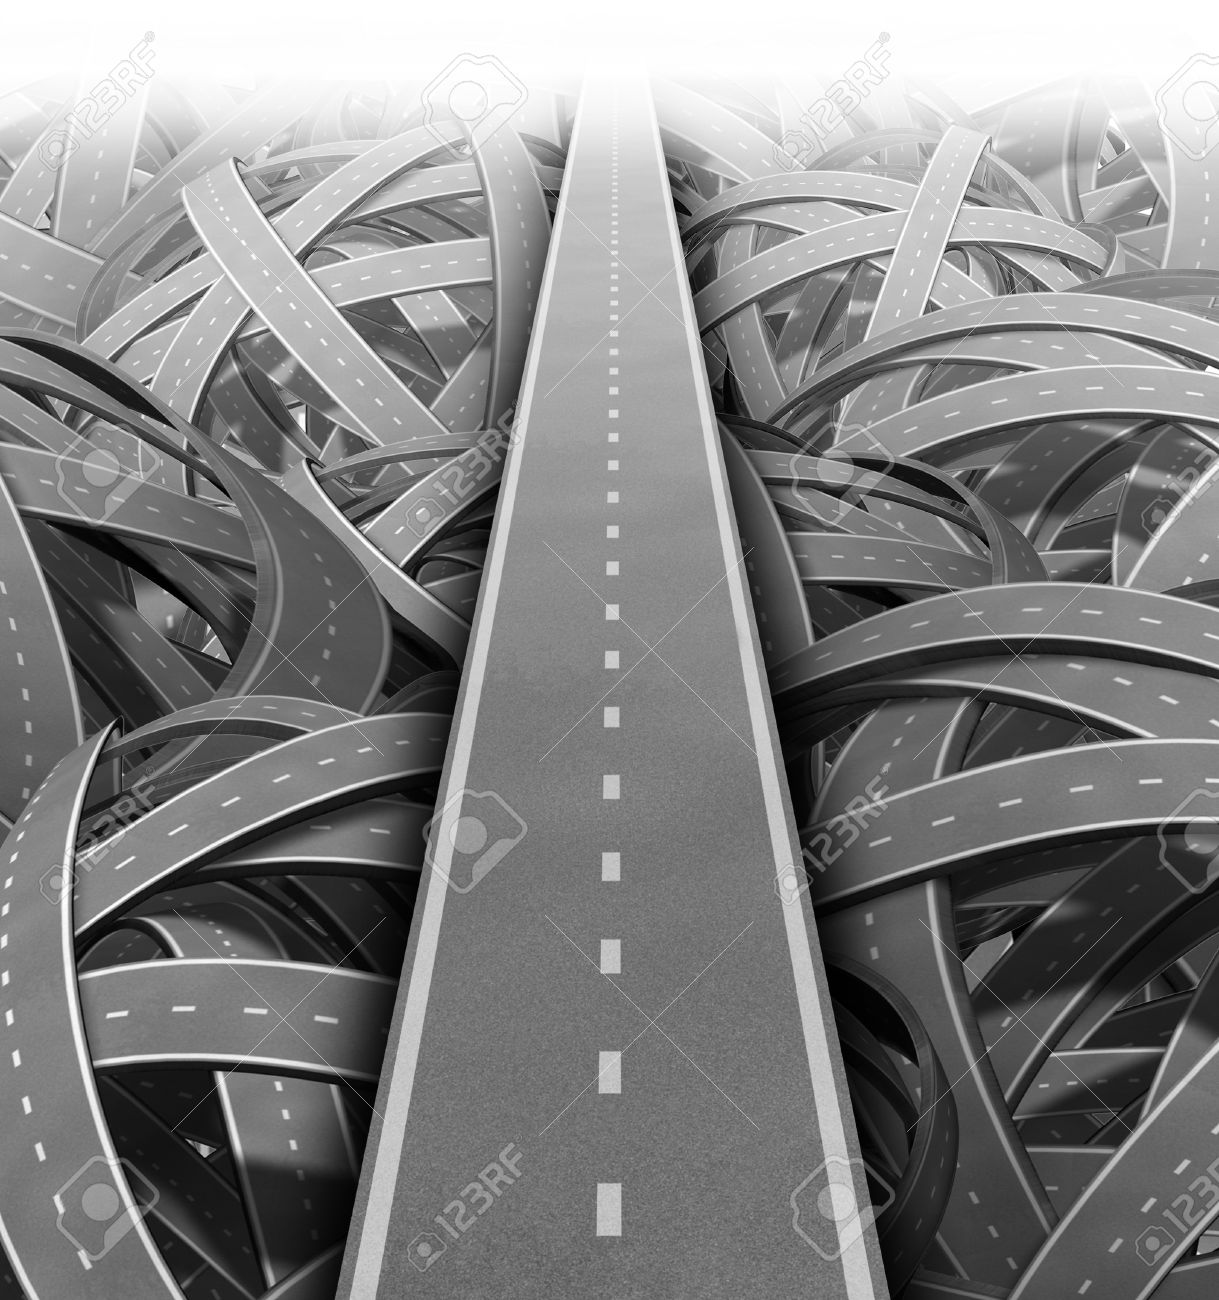 Cut through the mess for Solutions and success with clear vision and strategy due to careful planning and management building a road bridge over a maze of tangled mess of roads and highways cutting through the confusion and succeeding in business and life - 11359737